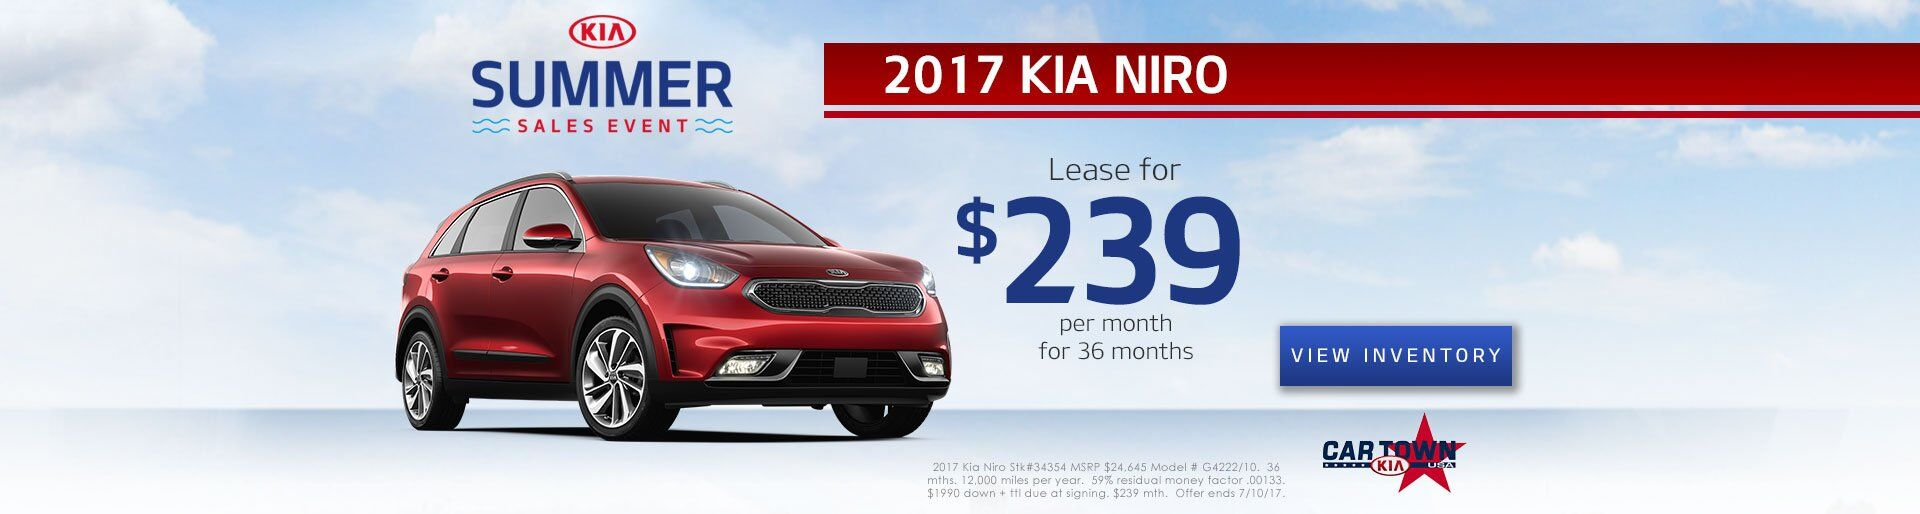 ... Cartown Kia All About Kia ...